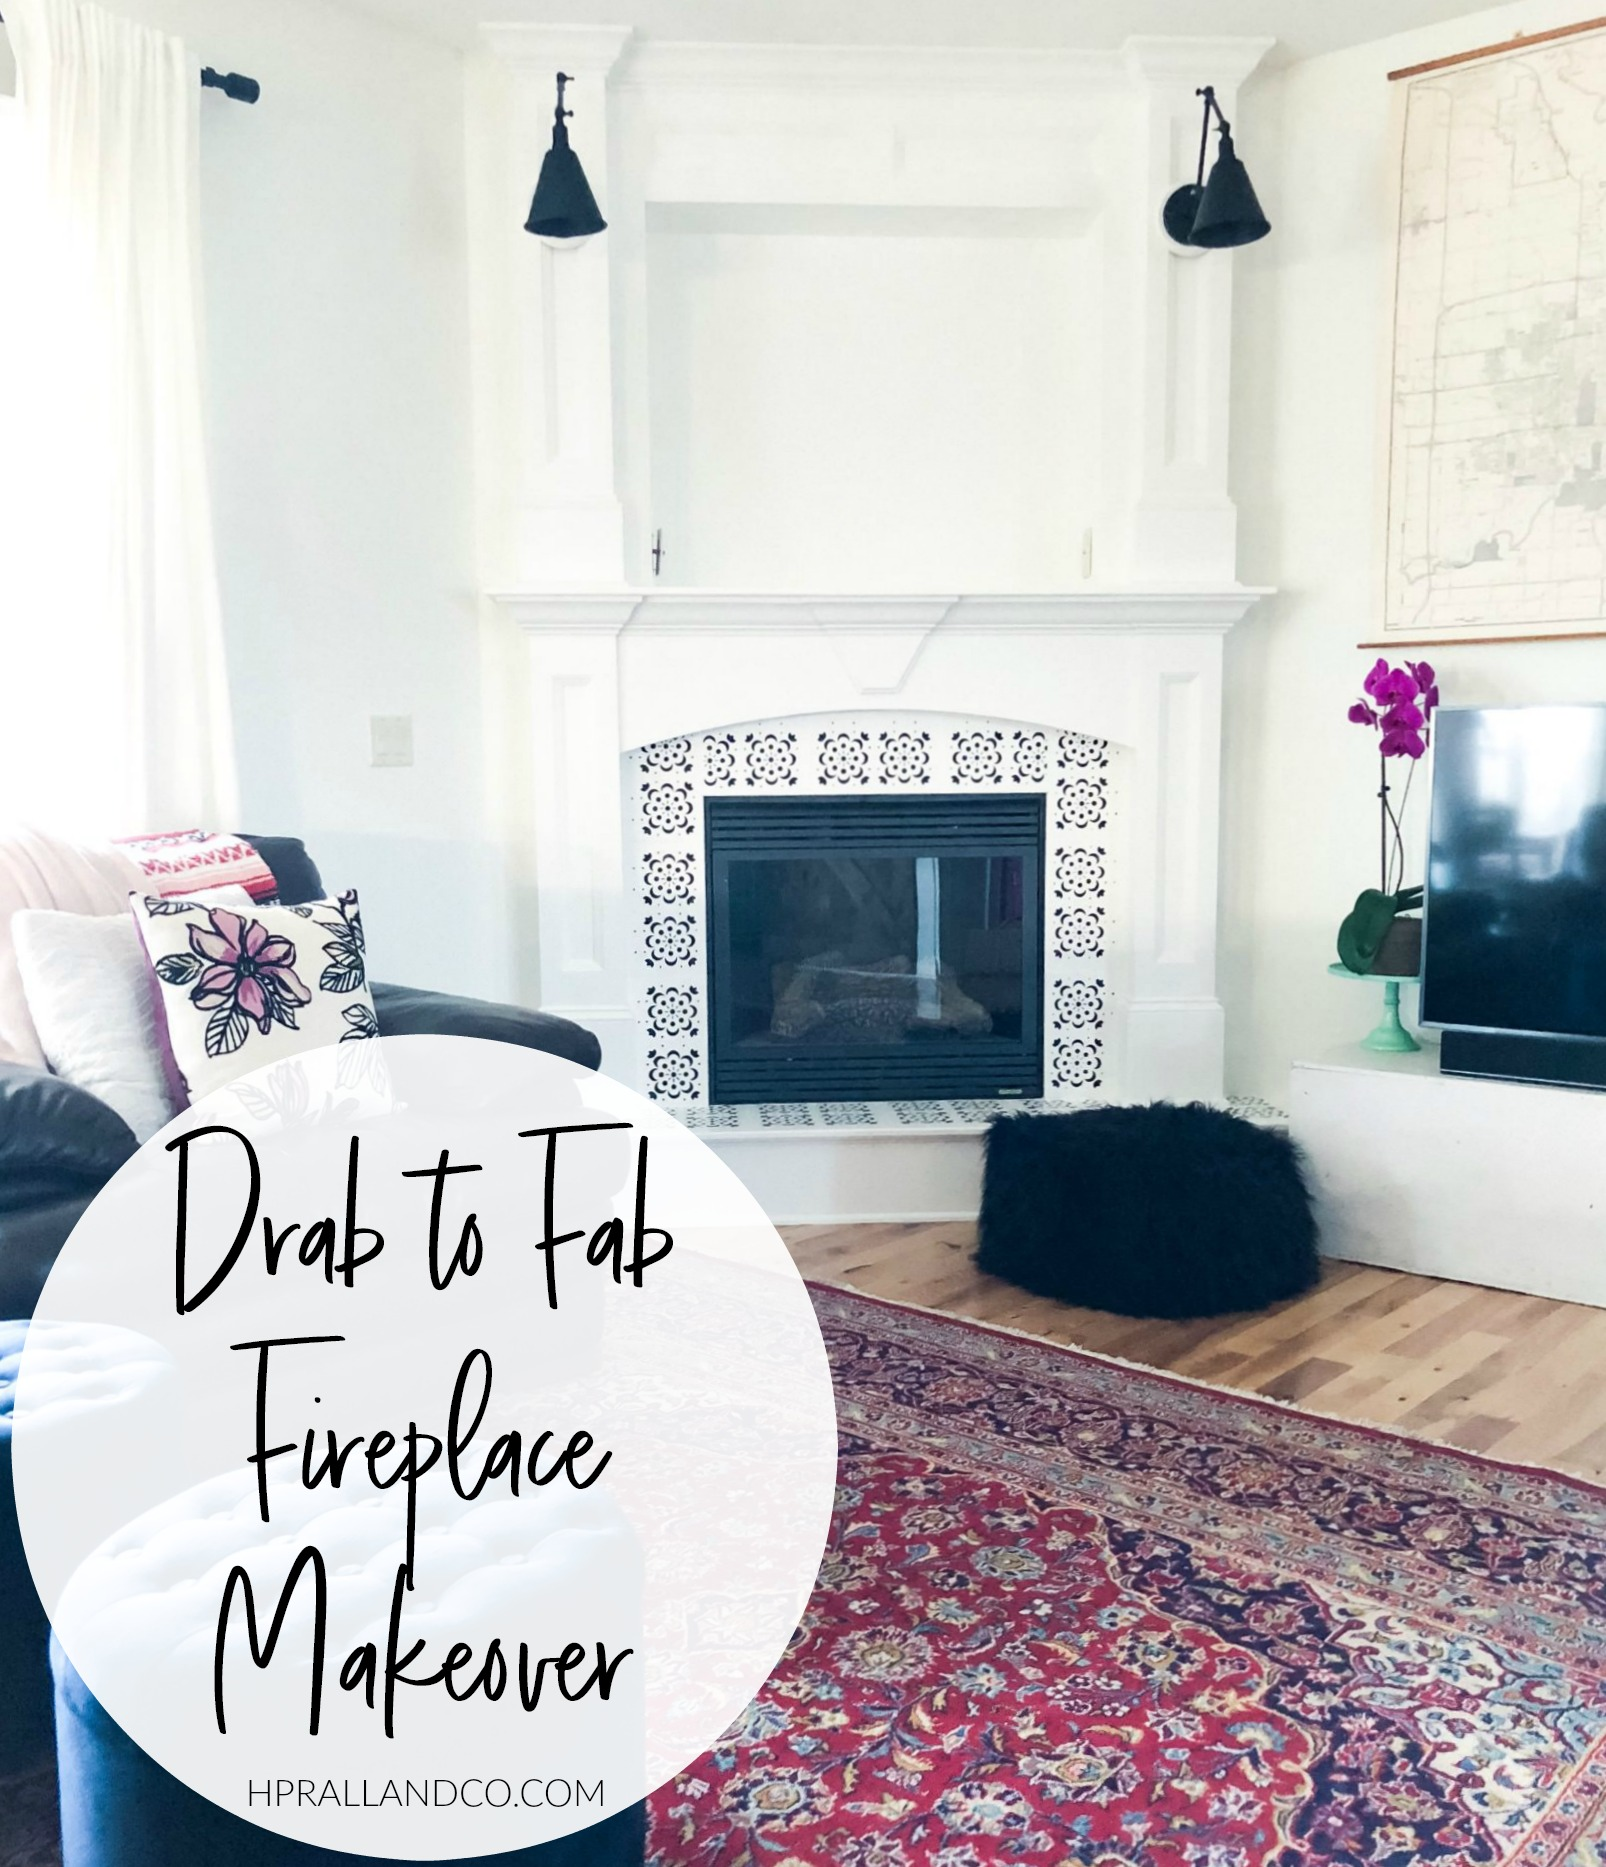 Drab to Fab Fireplace Makeover from hprallandco.com | H.Prall & Co. Interior Decorating